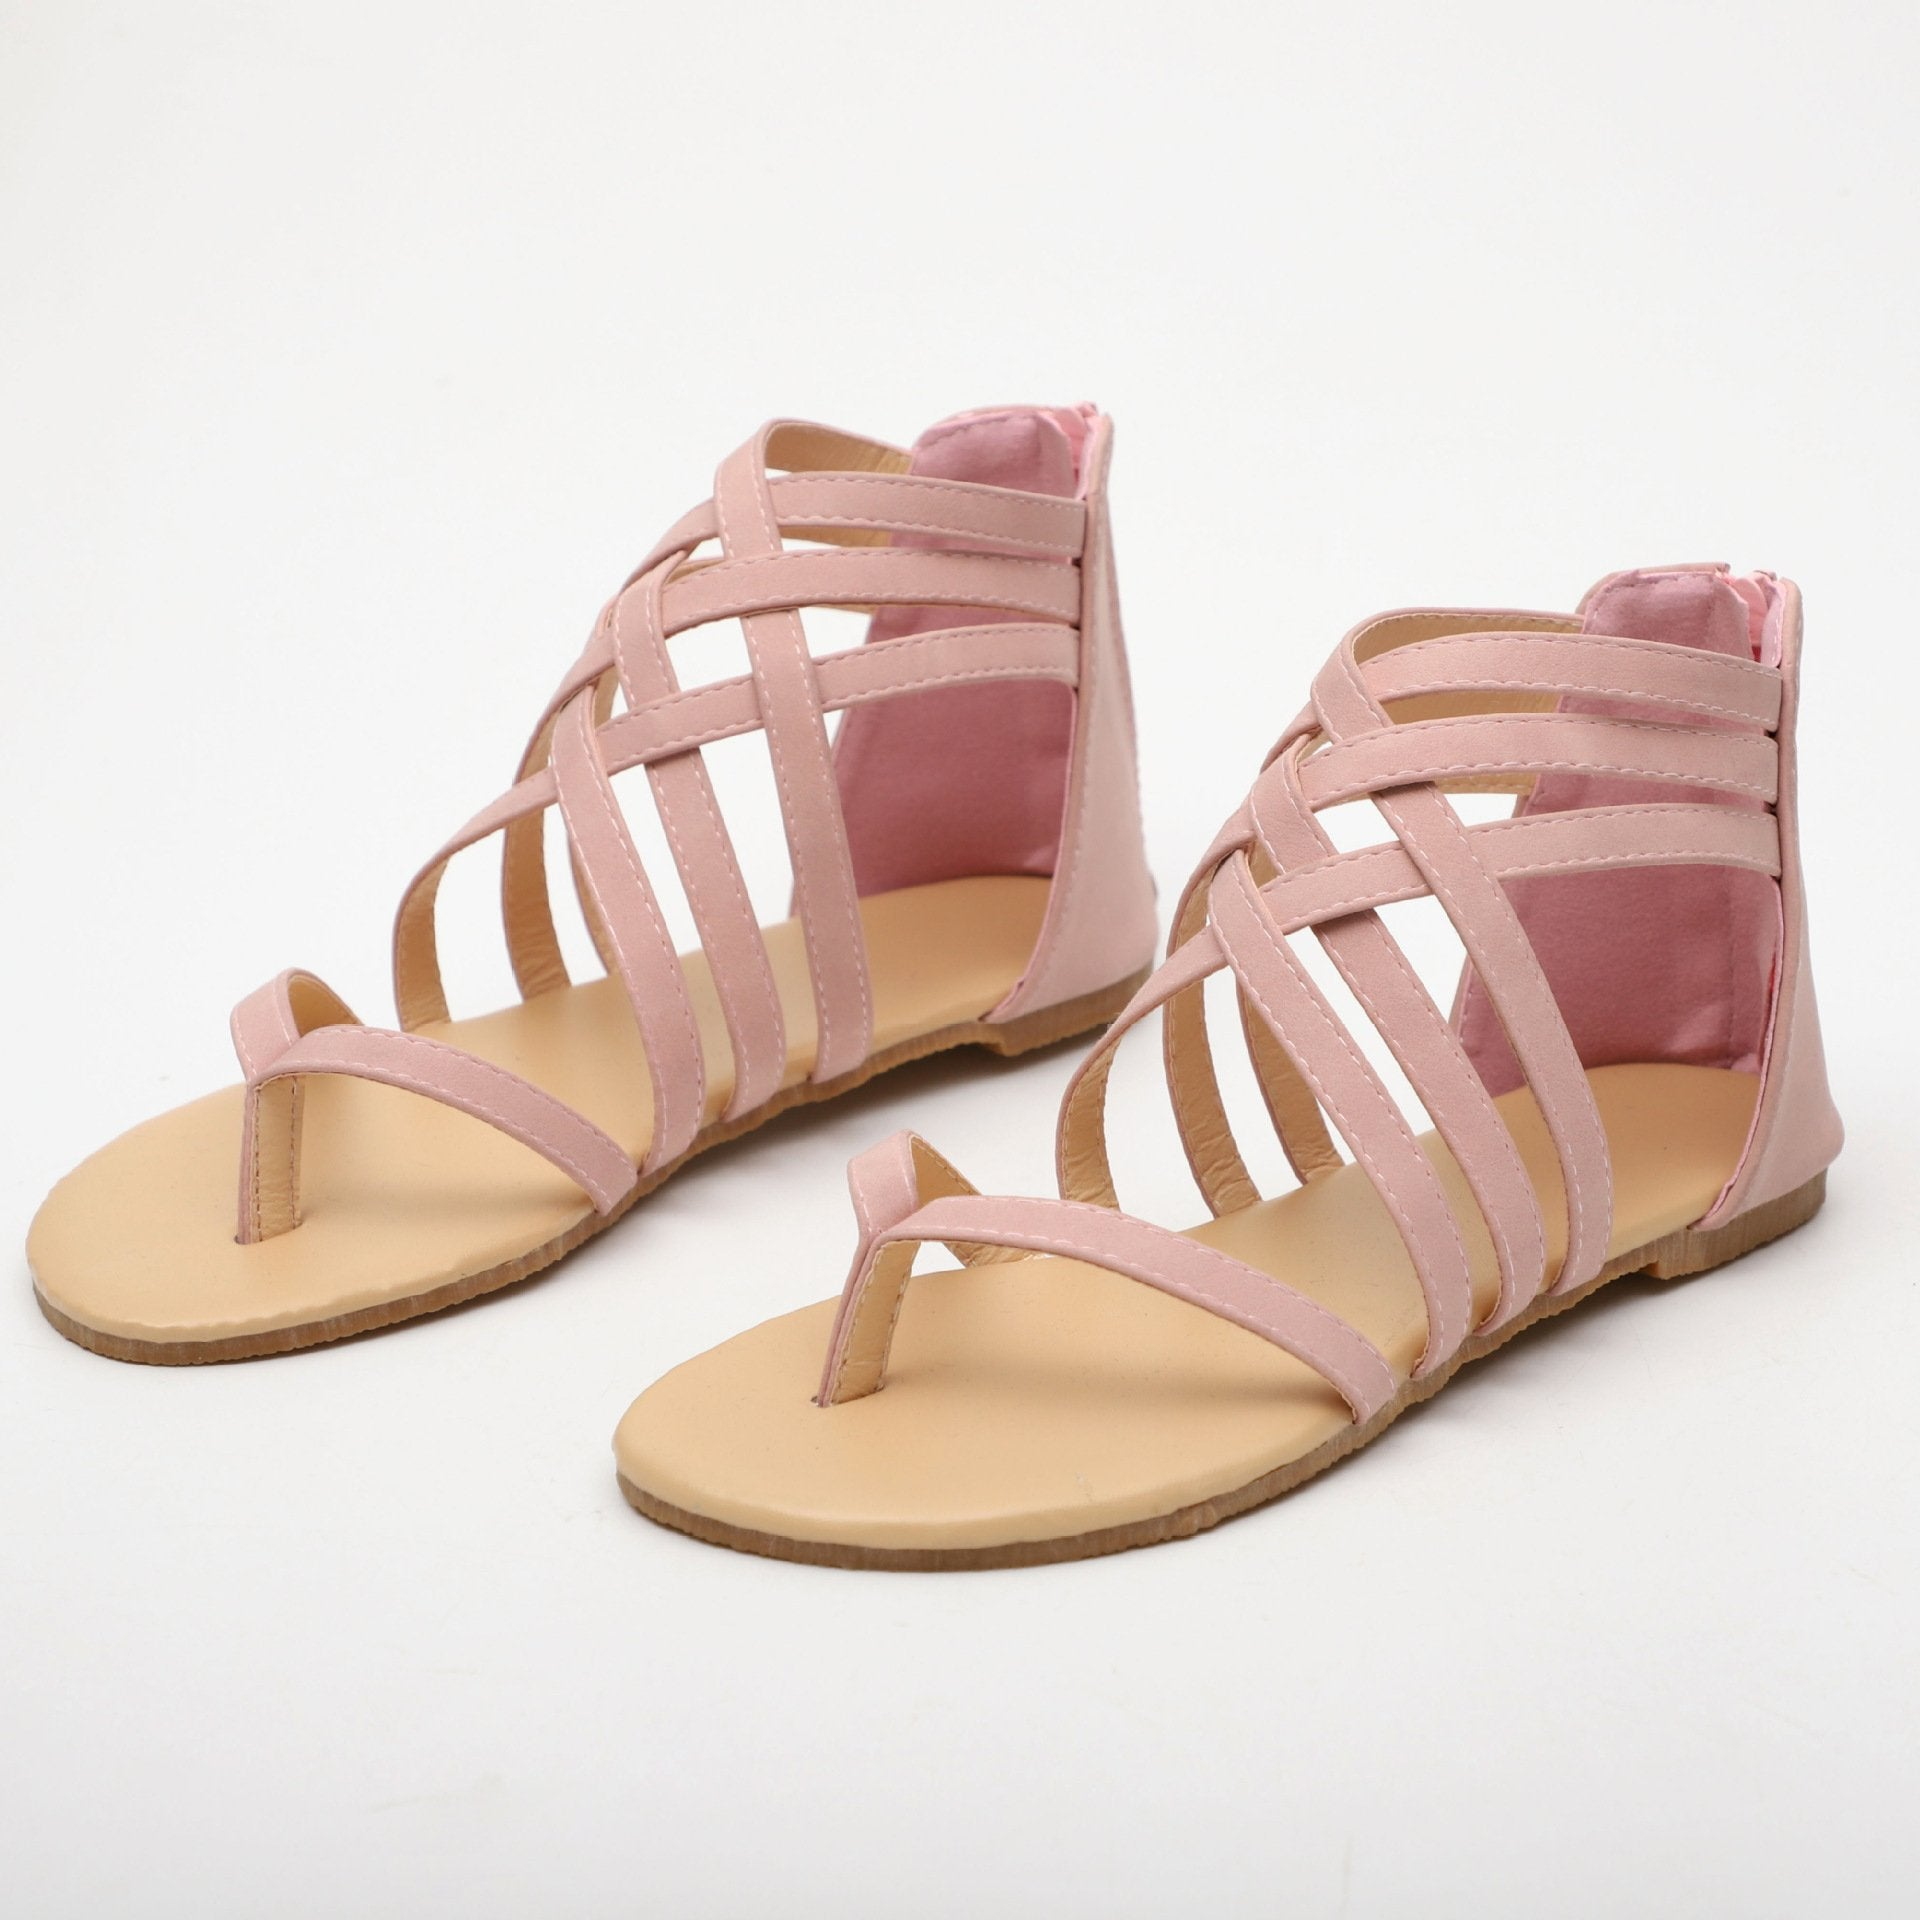 Rome Style Gladiator Cross Tied Sandals